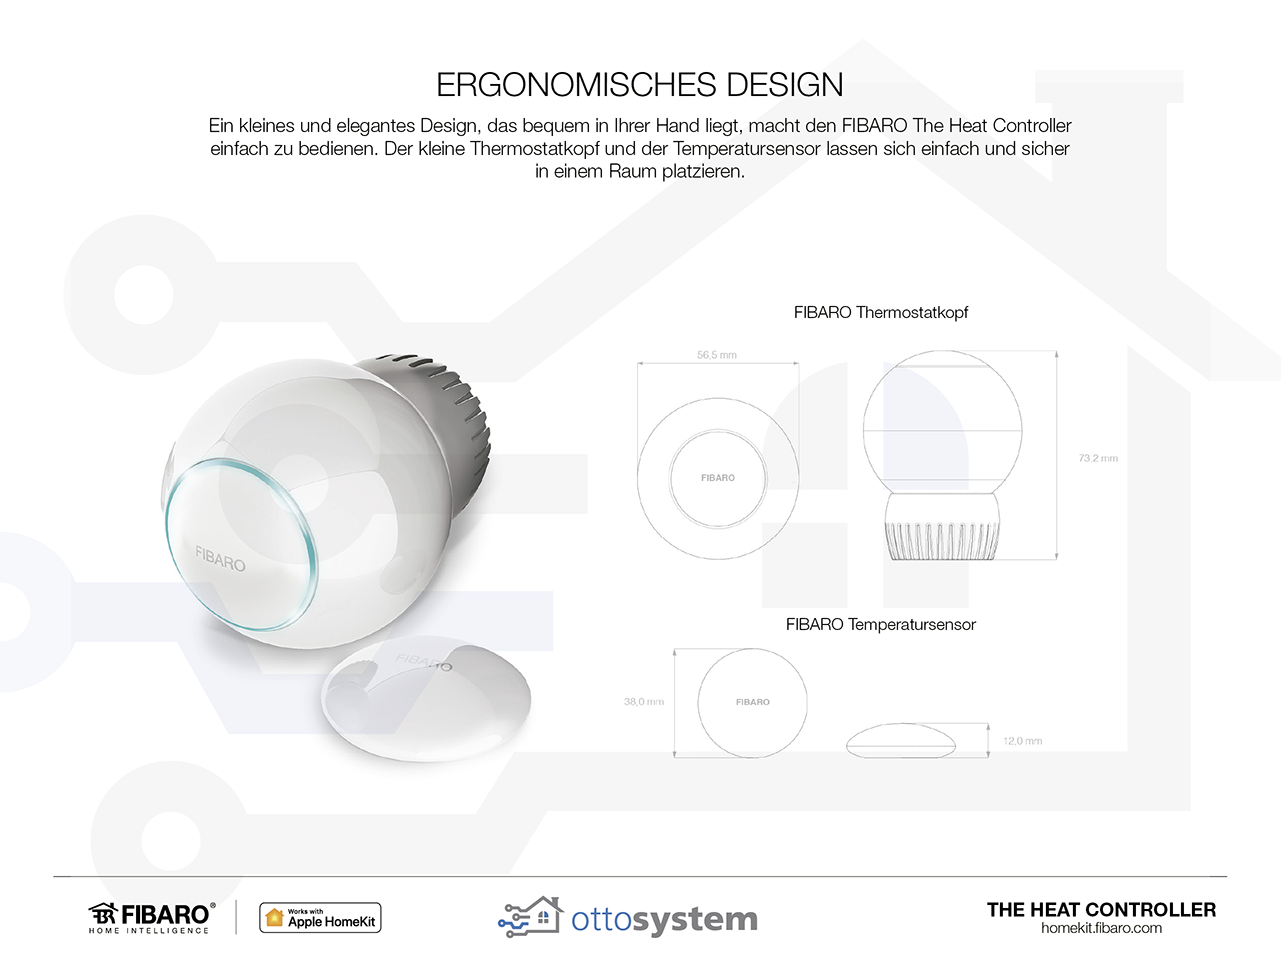 FIBARO_The-Heat-Controller-HK_ottosystem-36